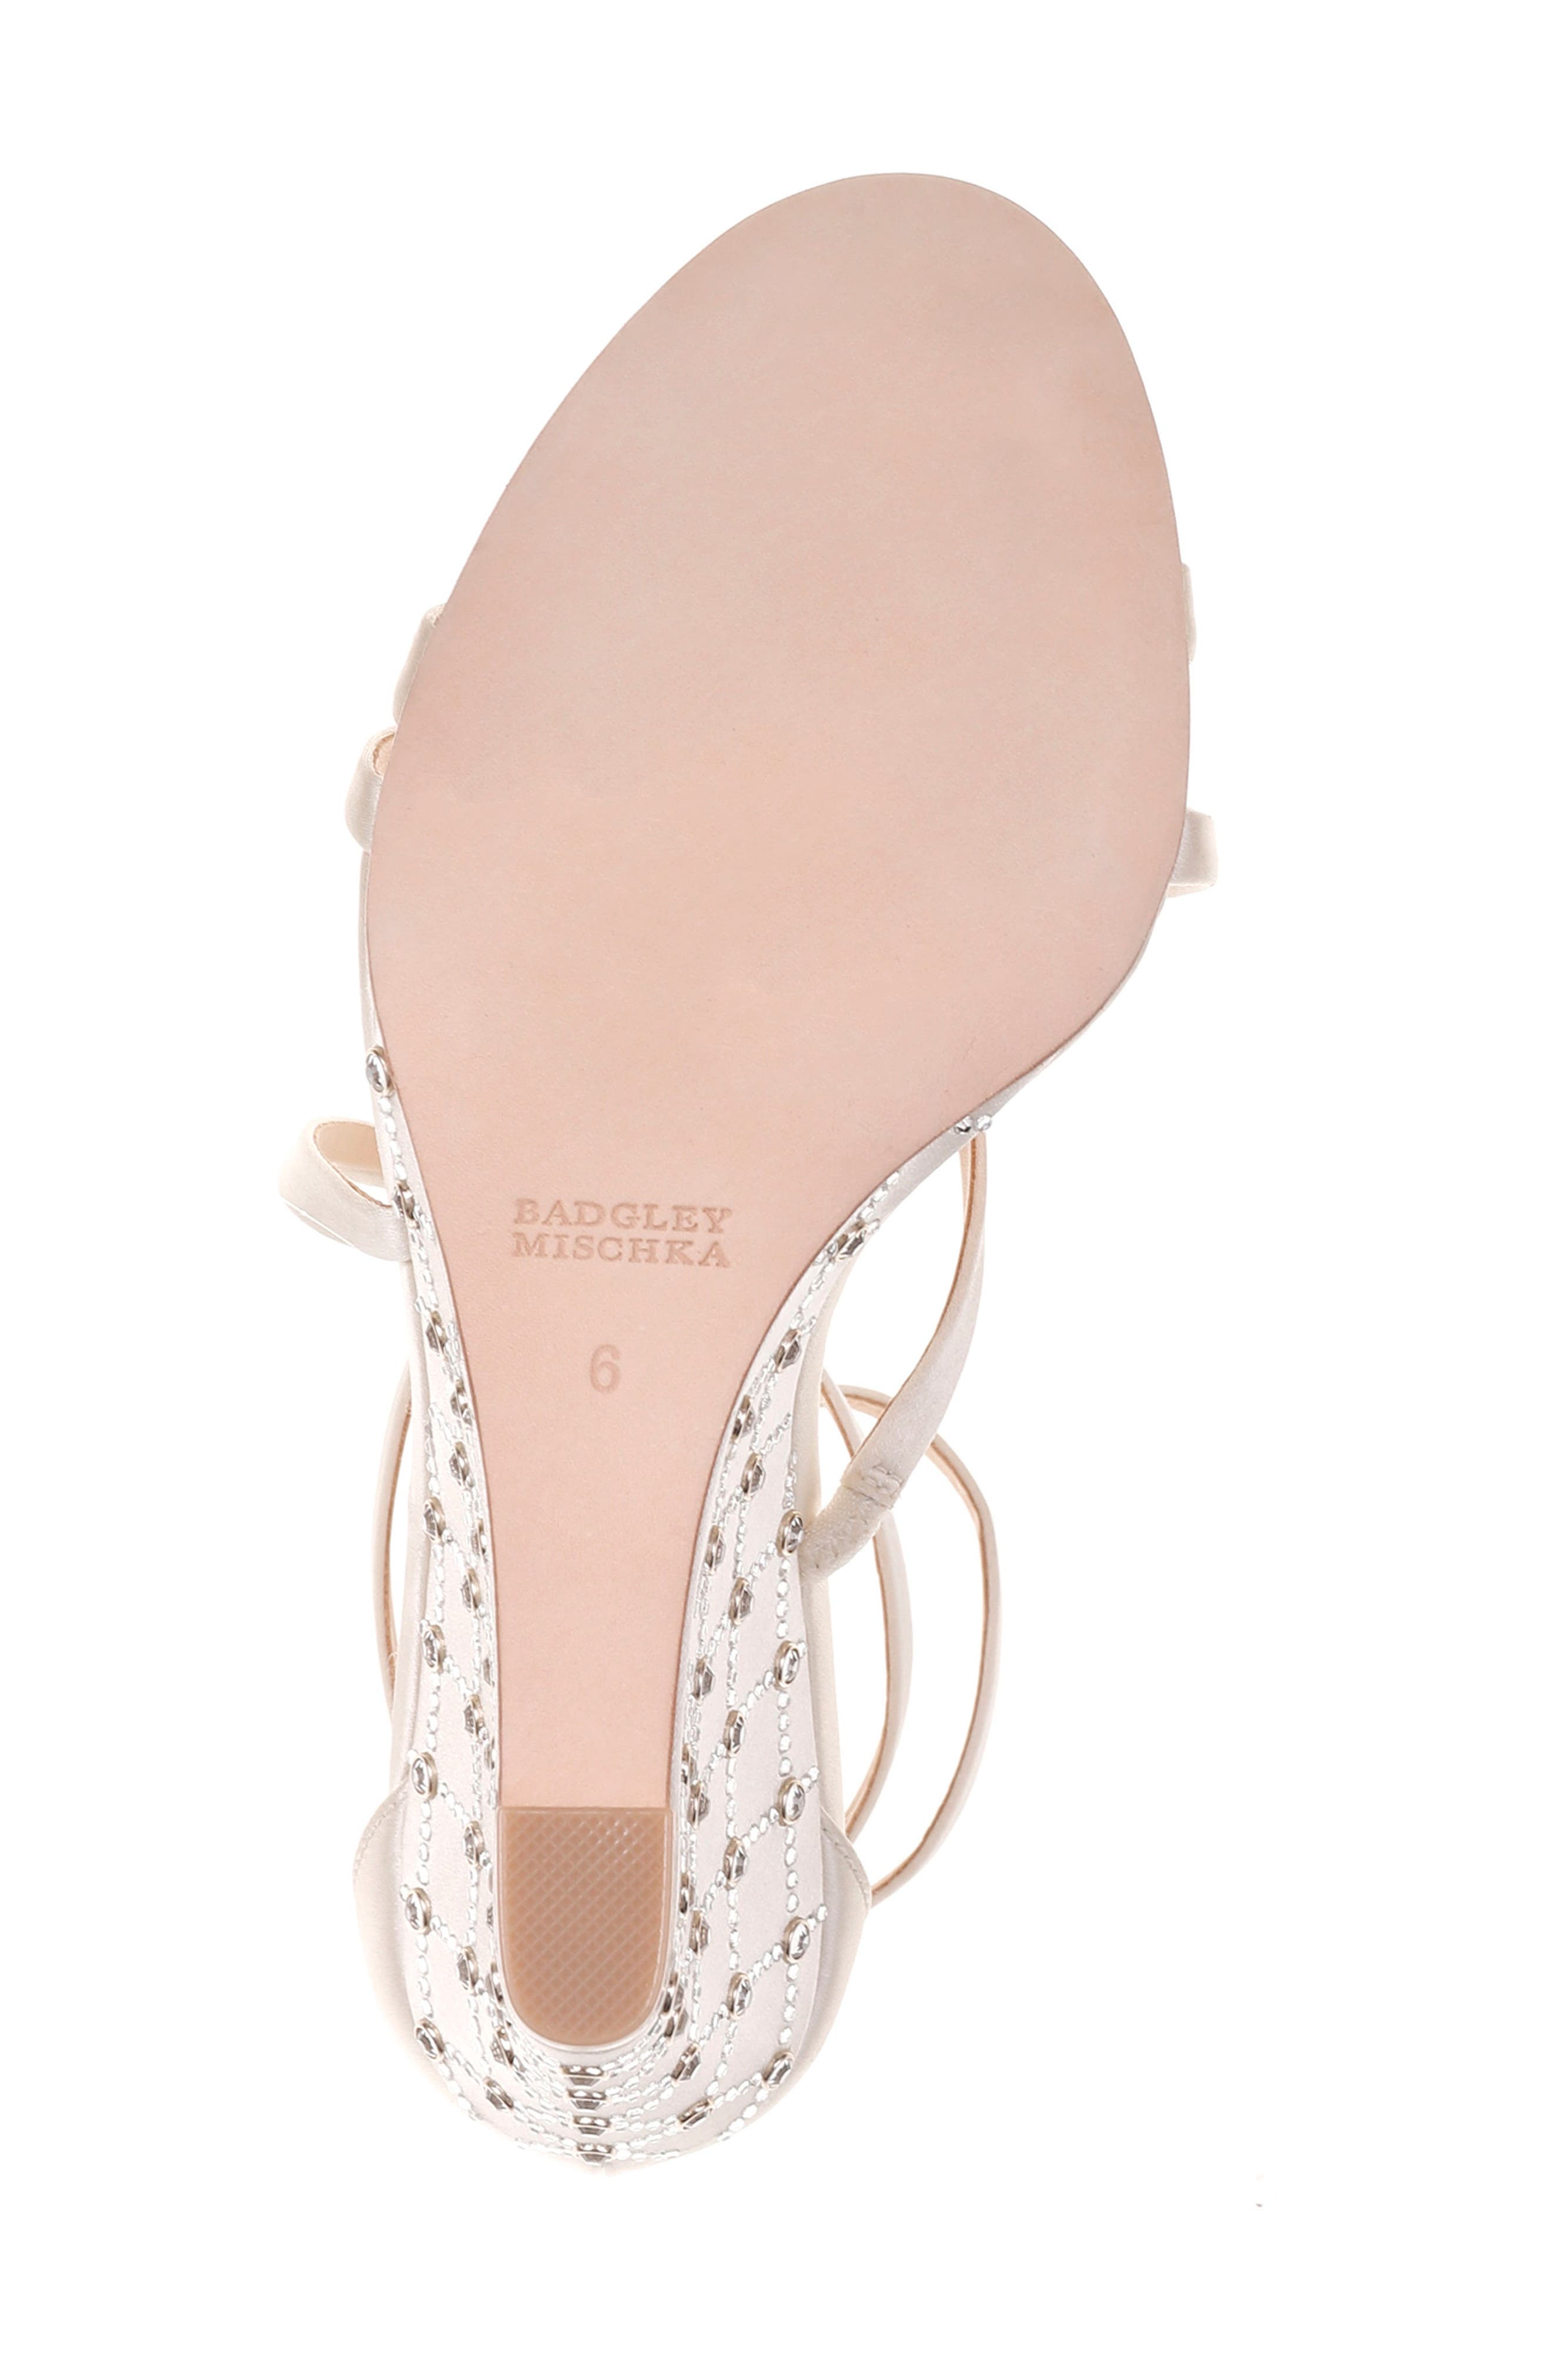 Shelly Strappy Wedge Sandal,                             Alternate thumbnail 6, color,                             Ivory Satin